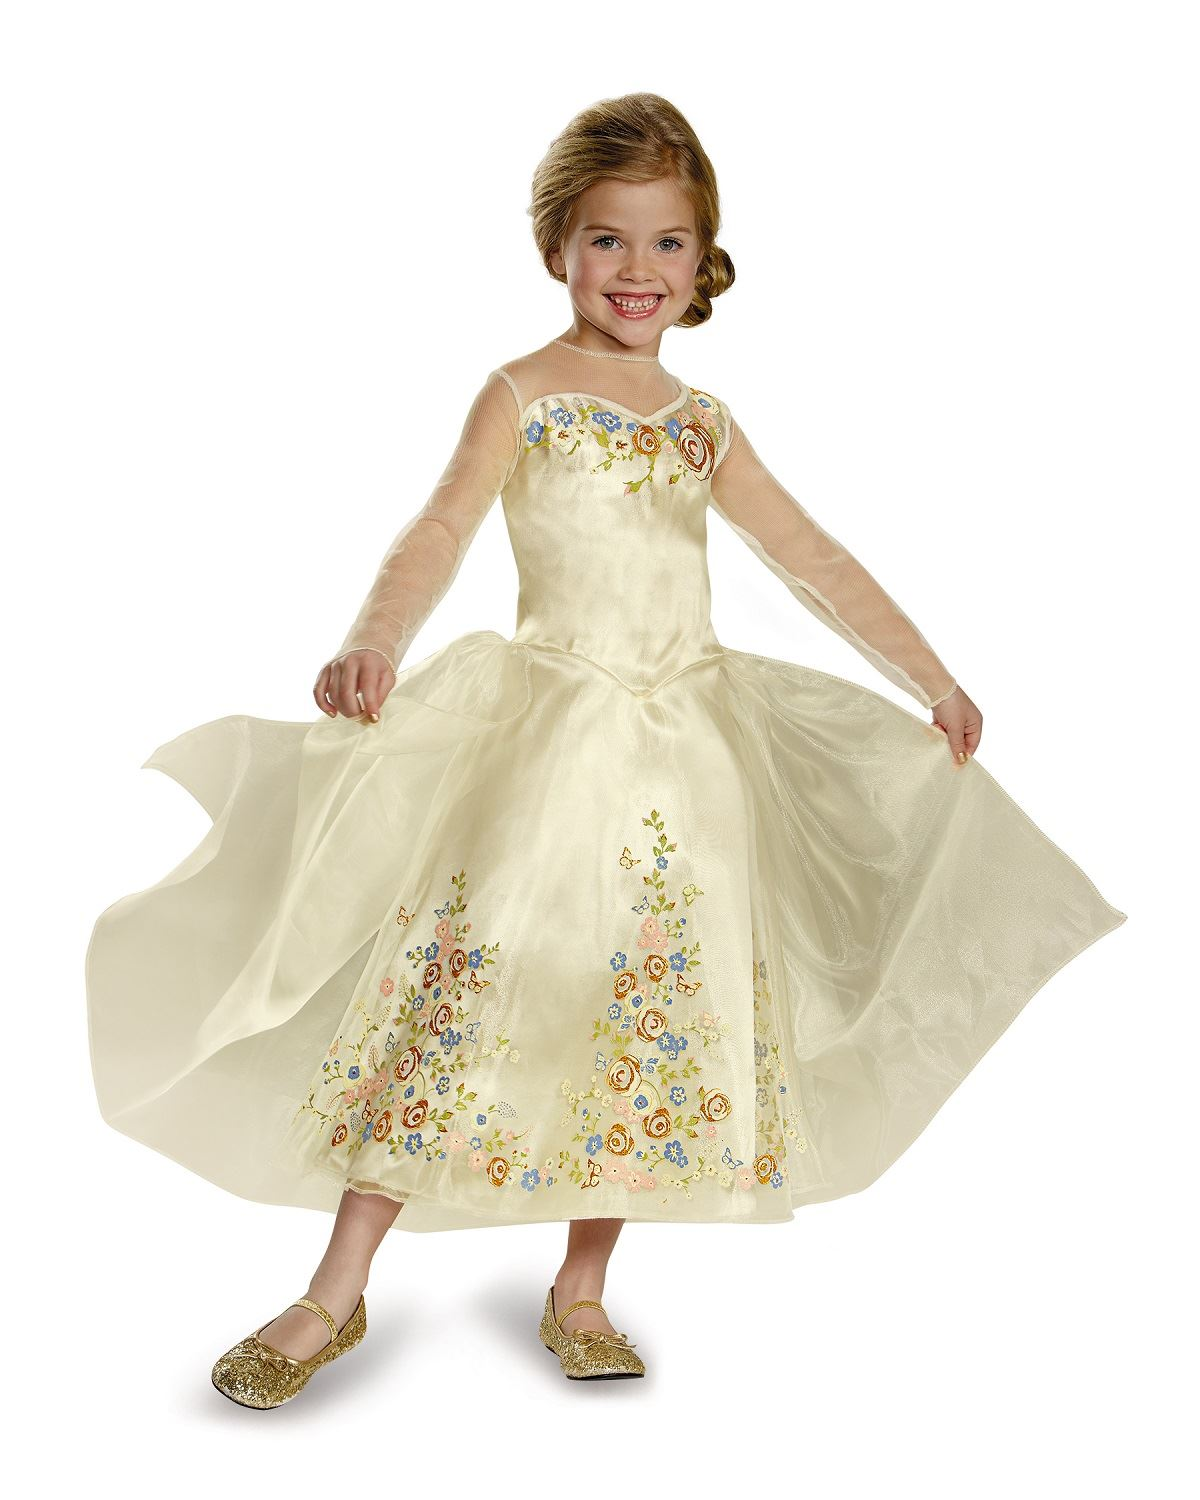 wedding dress girls halloween costume the costume land